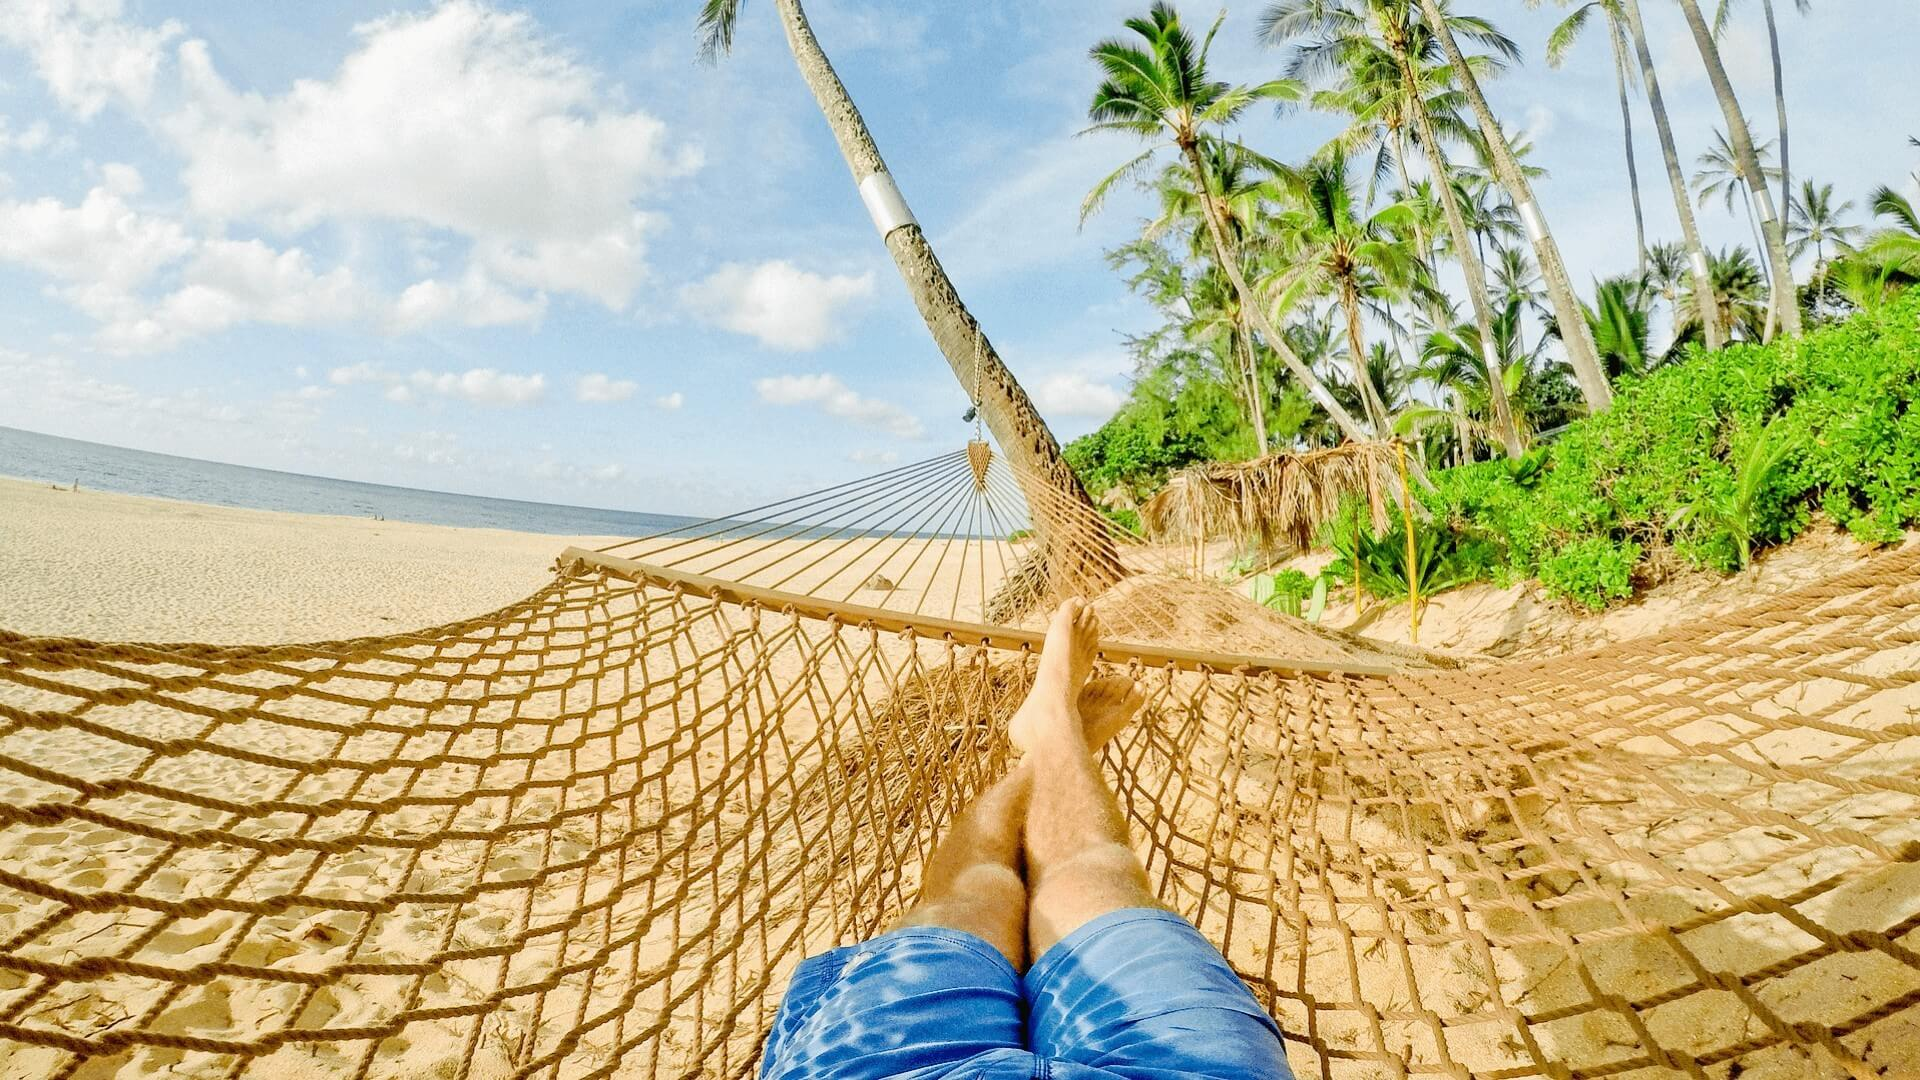 The Top 5 Tools To Help You Relax From PTSD